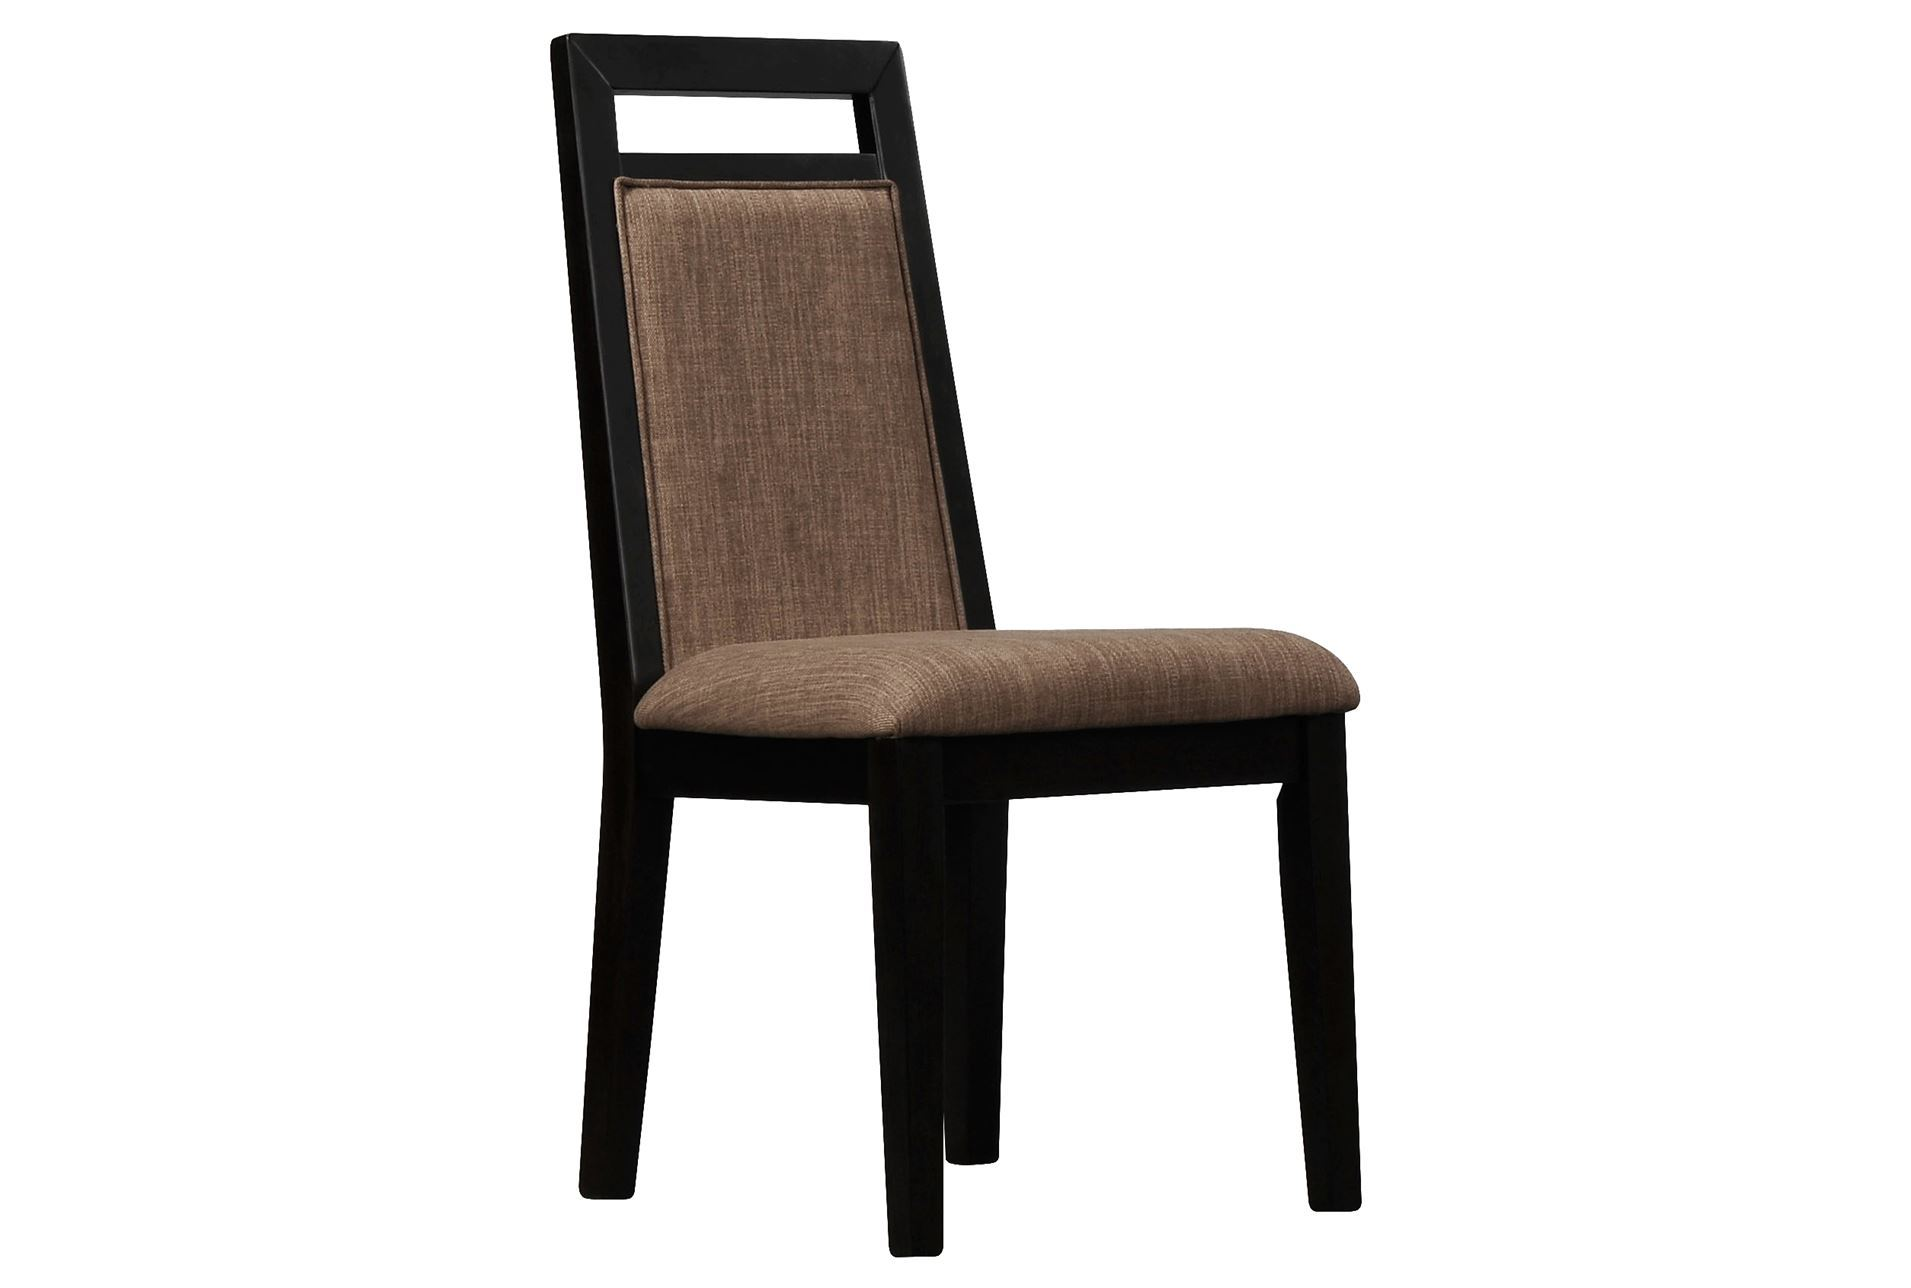 Spencer upholstered side chair living spaces - Upholstered chairs for small spaces concept ...